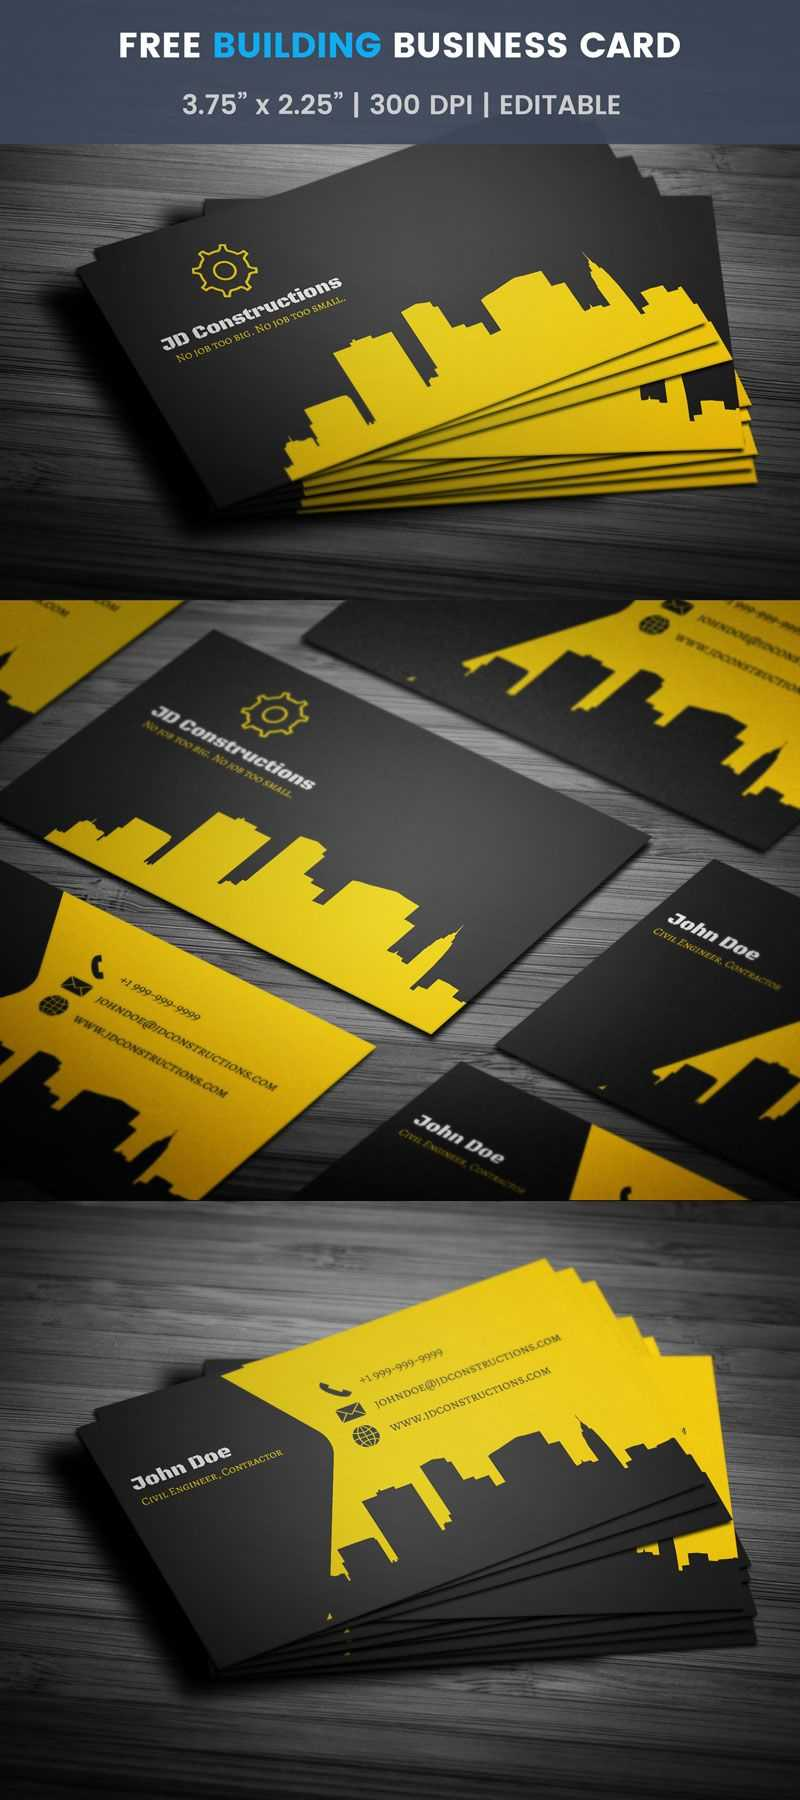 Free Construction Business Card Template Word Visiting With Regard To Construction Business Card Templates Download Free